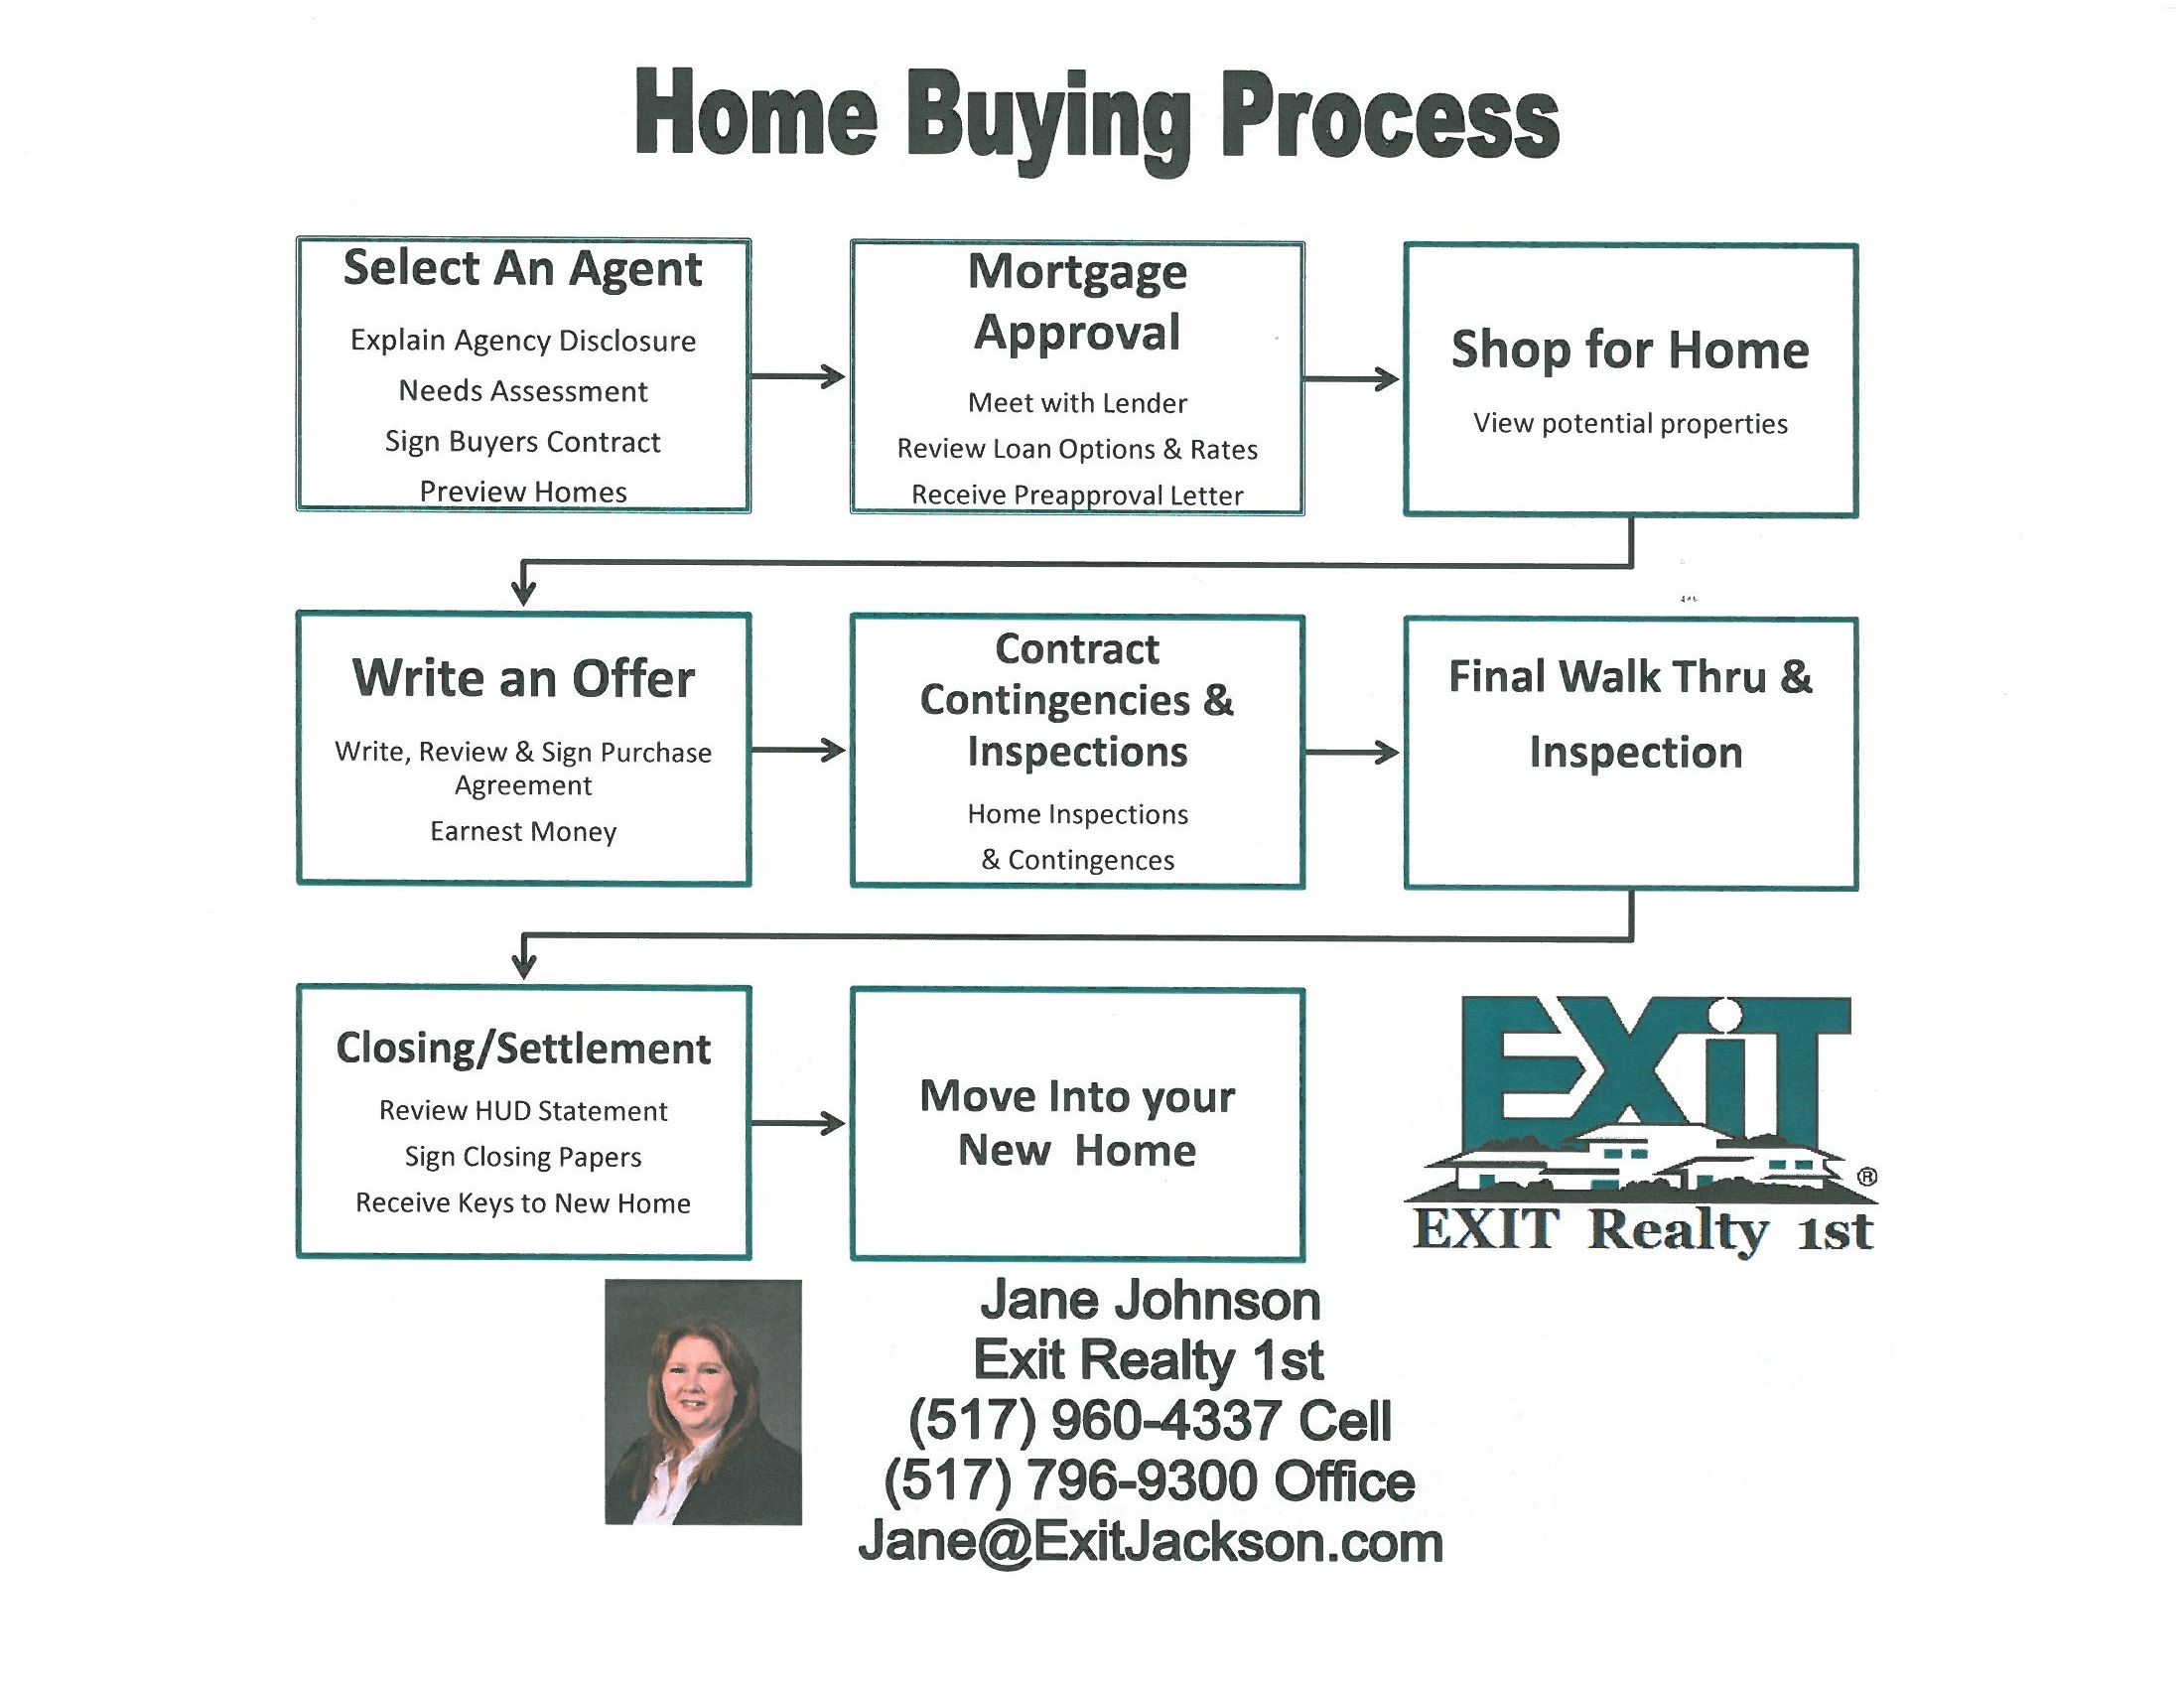 Buying A Home Should Be An Exciting Time For People Not Stressful My Flow Chart Is Designed To Help Buyers Pa Home Buying Process Home Buying Home Ownership